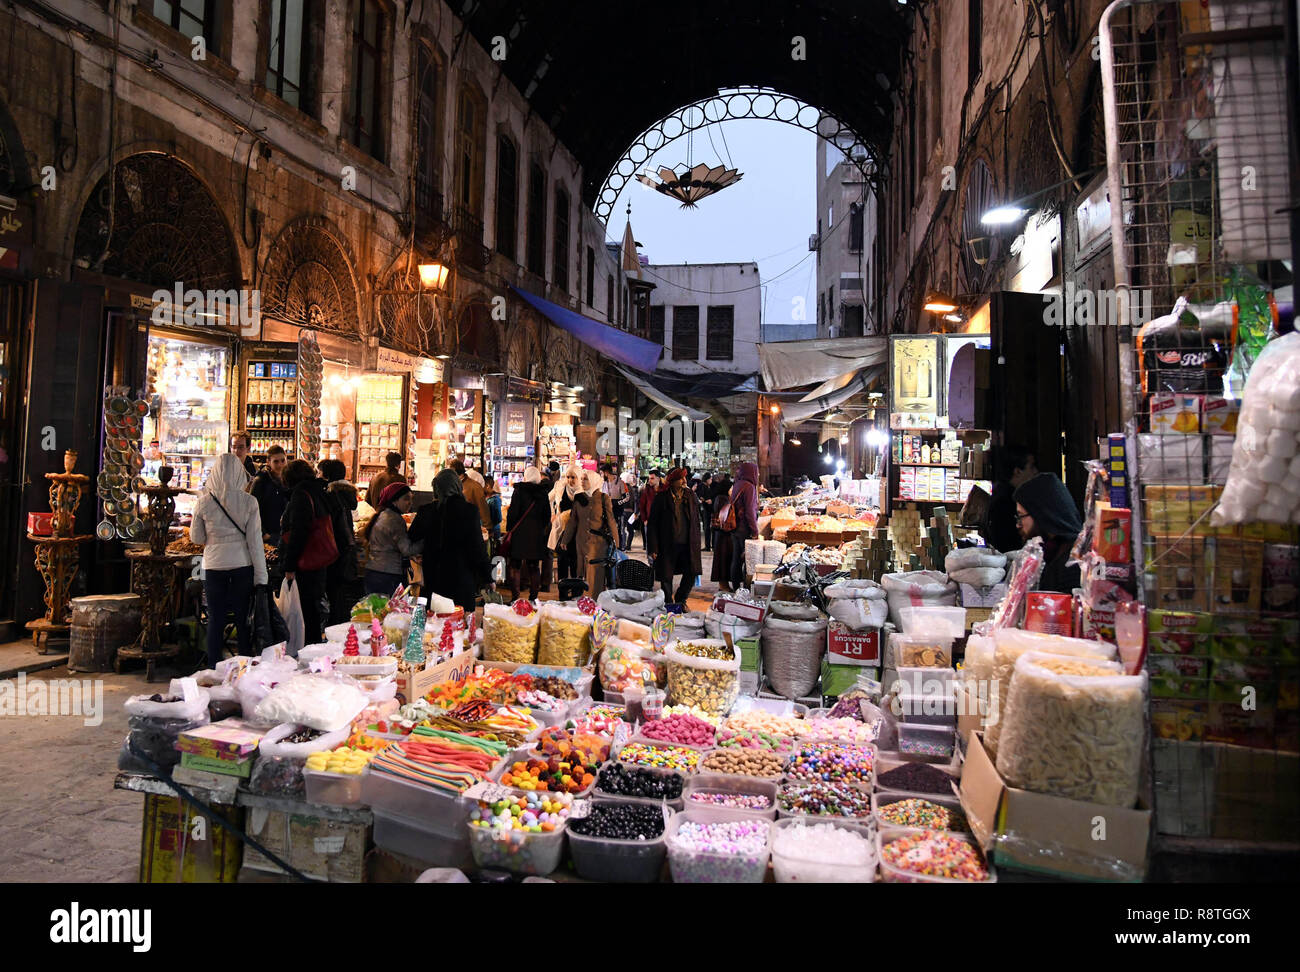 Damascus, Syria. 17th Dec, 2018. People shop at a marketplace in the old city of Damascus, capital of Syria, on Dec. 17, 2018. As Christmas and the New Year approach, Syrians in Damascus shopped for gifts, candies and decorations at marketplaces. Credit: Ammar Safarjalani/Xinhua/Alamy Live News - Stock Image